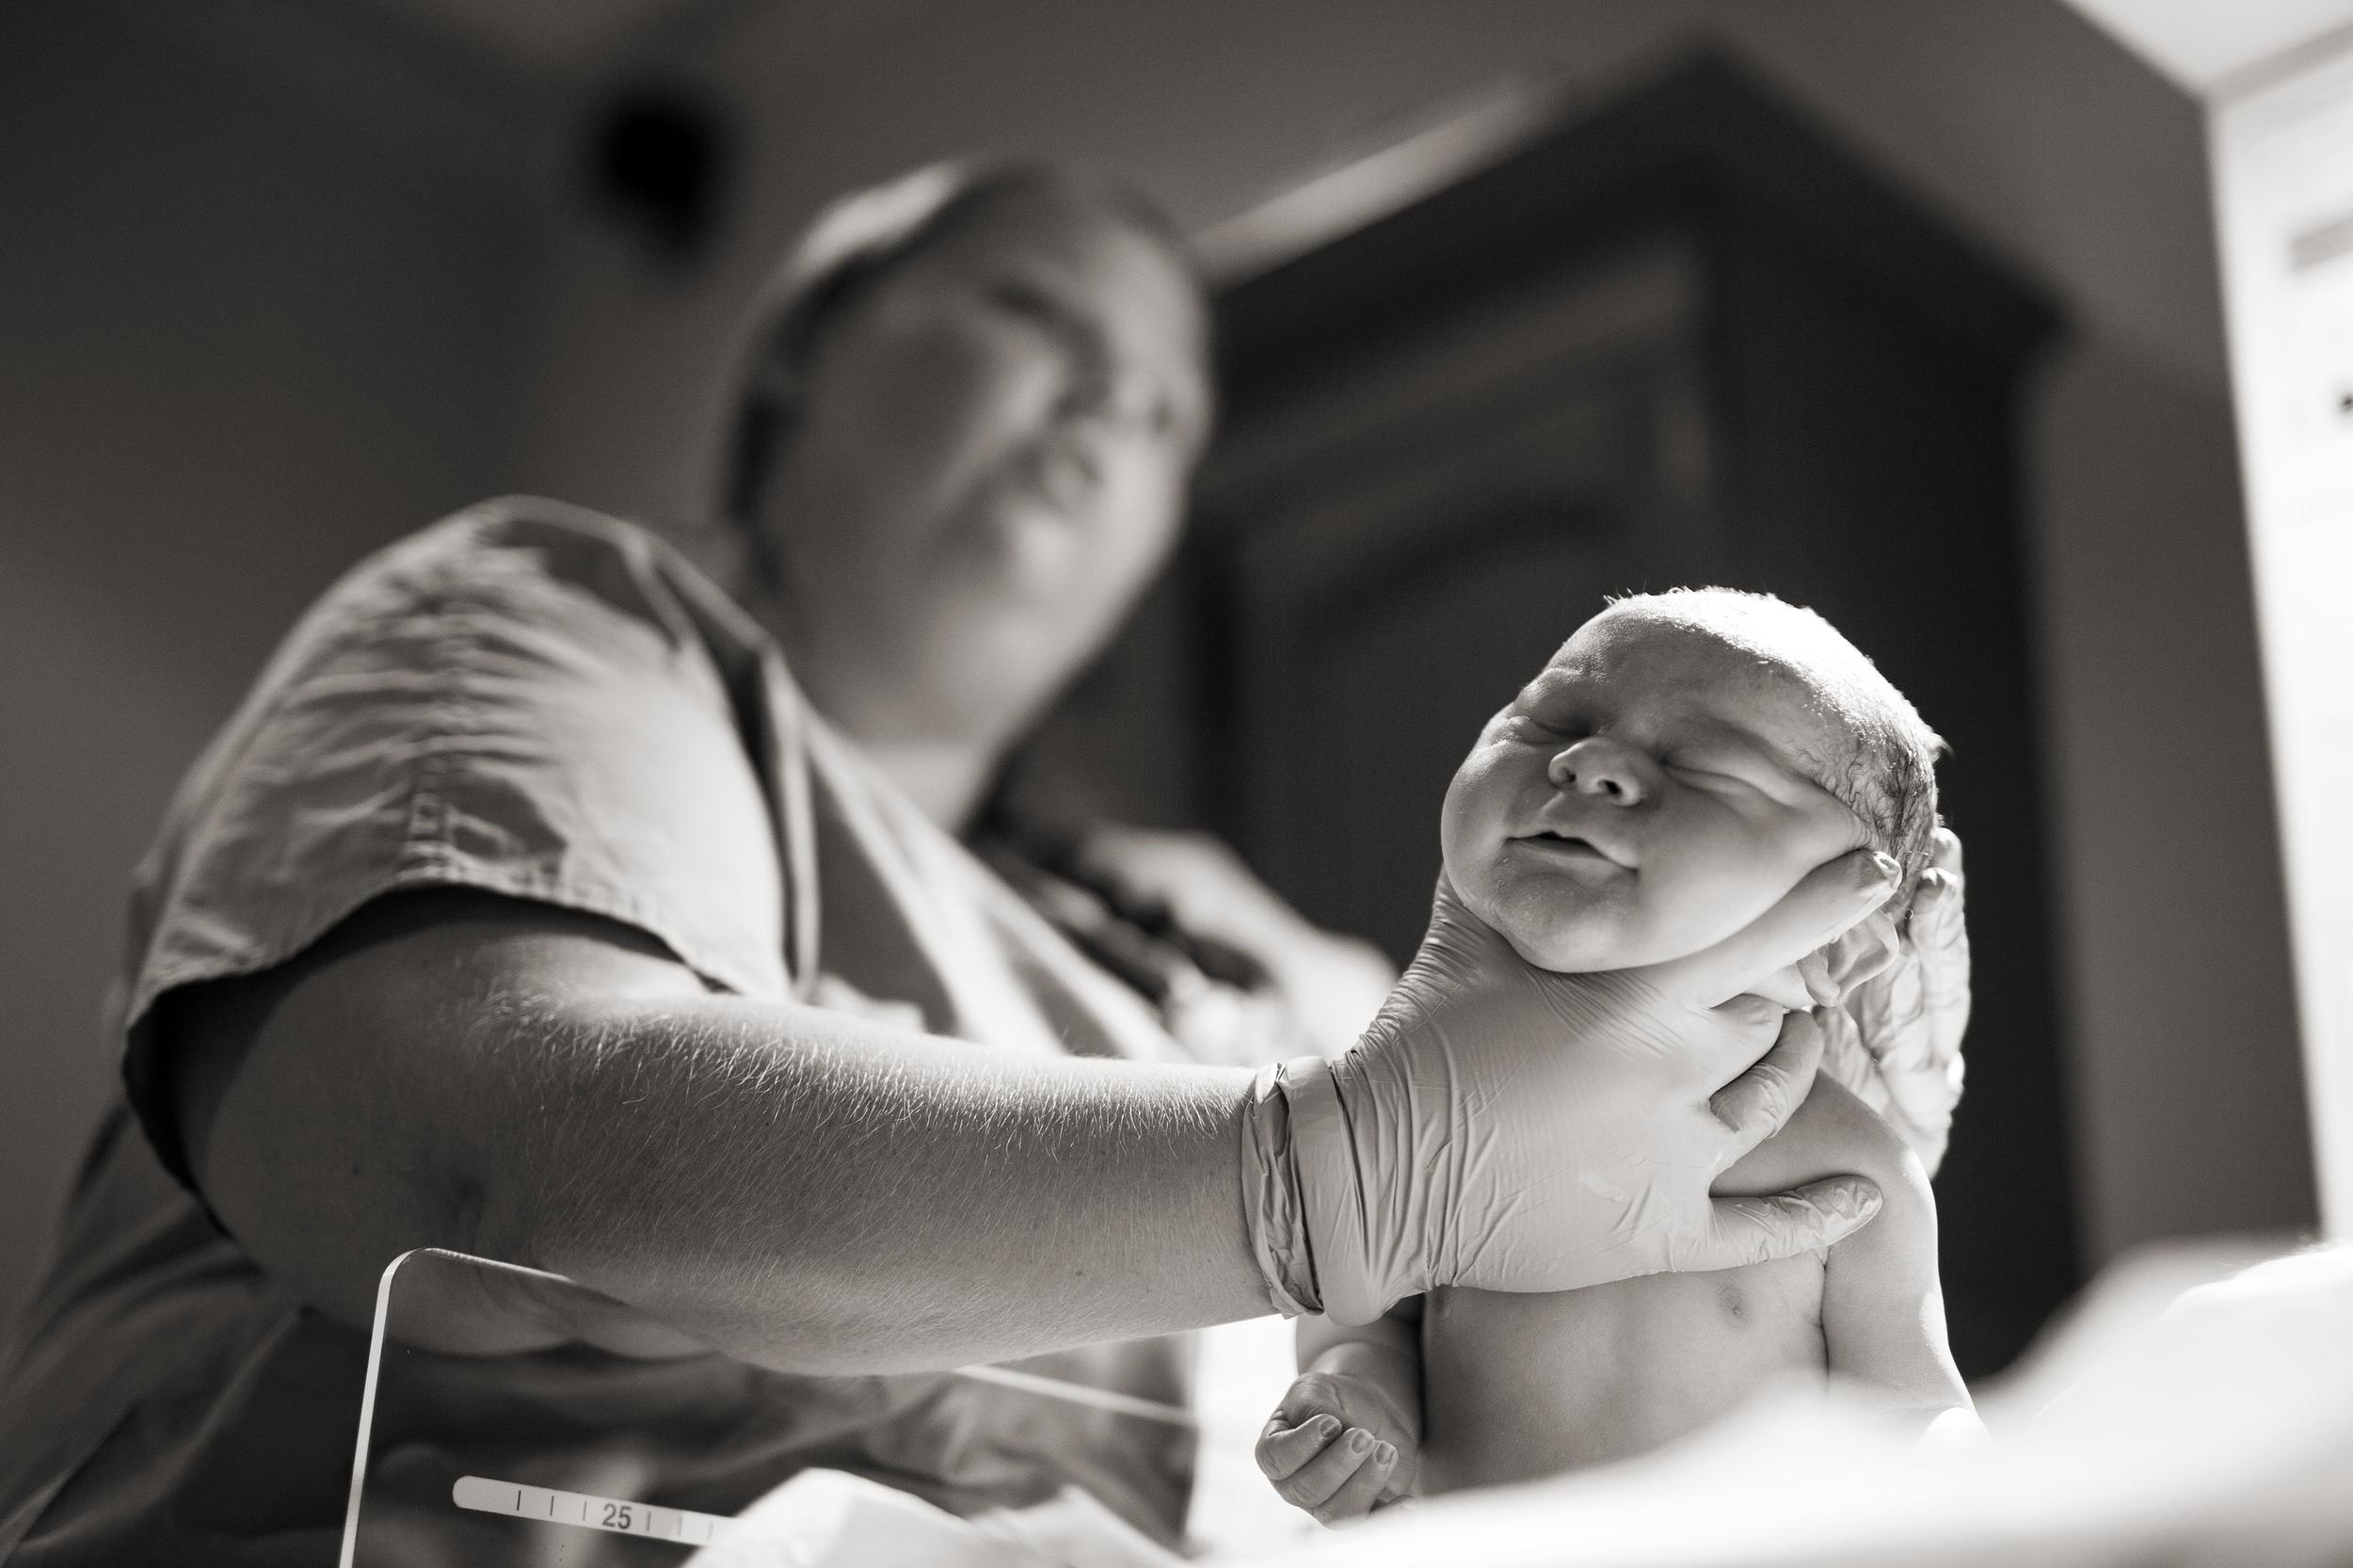 BKphotography2015_Towne Birth Blog022.jpg